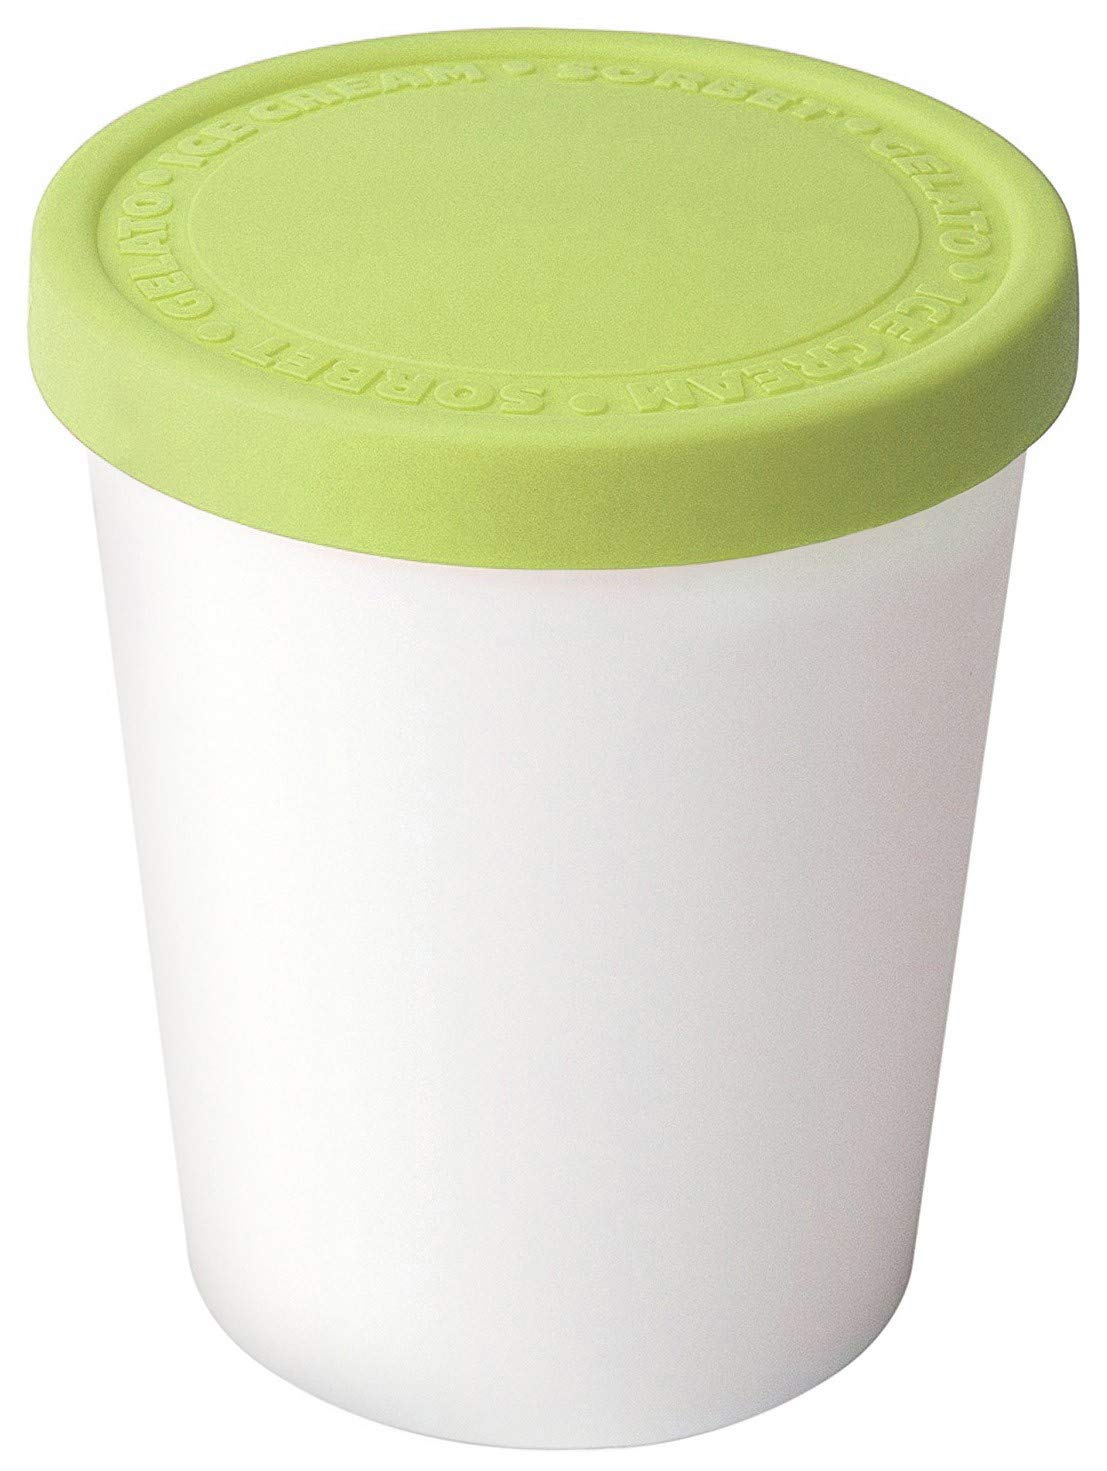 Tovolo Tight-Fitting, Stack-Friendly, Sweet Treat Ice Cream Tub, Pistachio by Tovolo (Image #1)